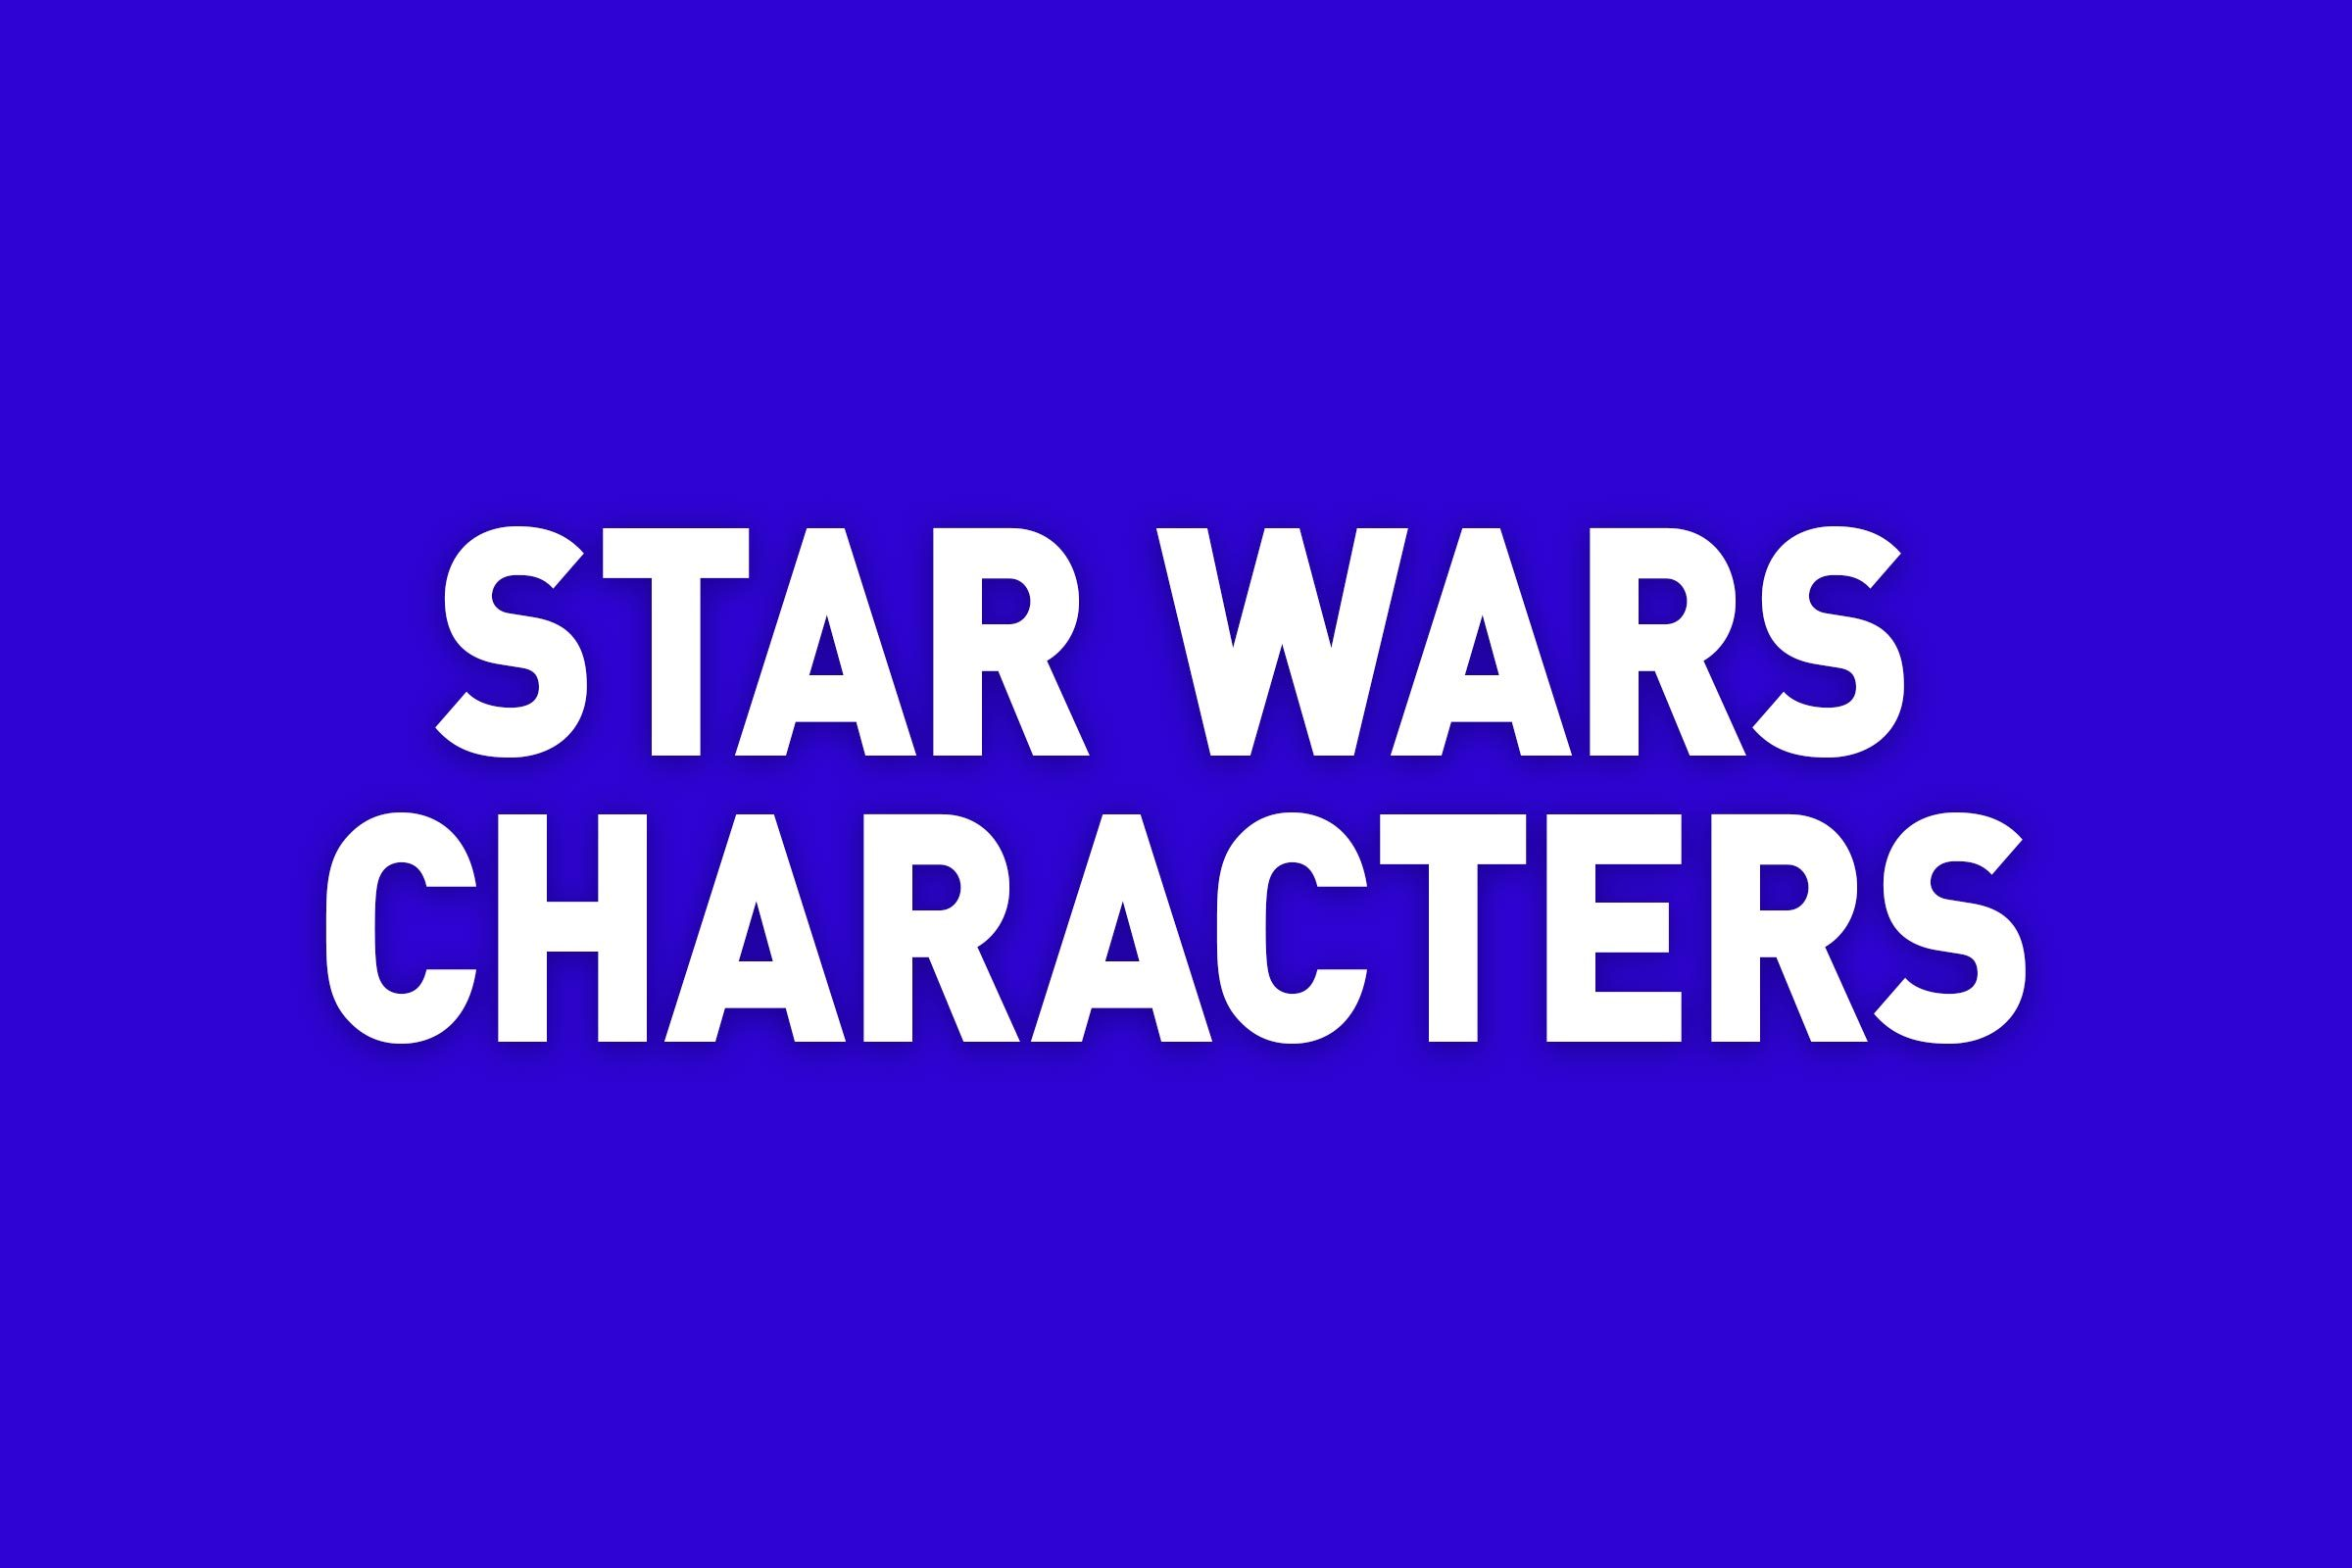 star wars characters jeopardy category